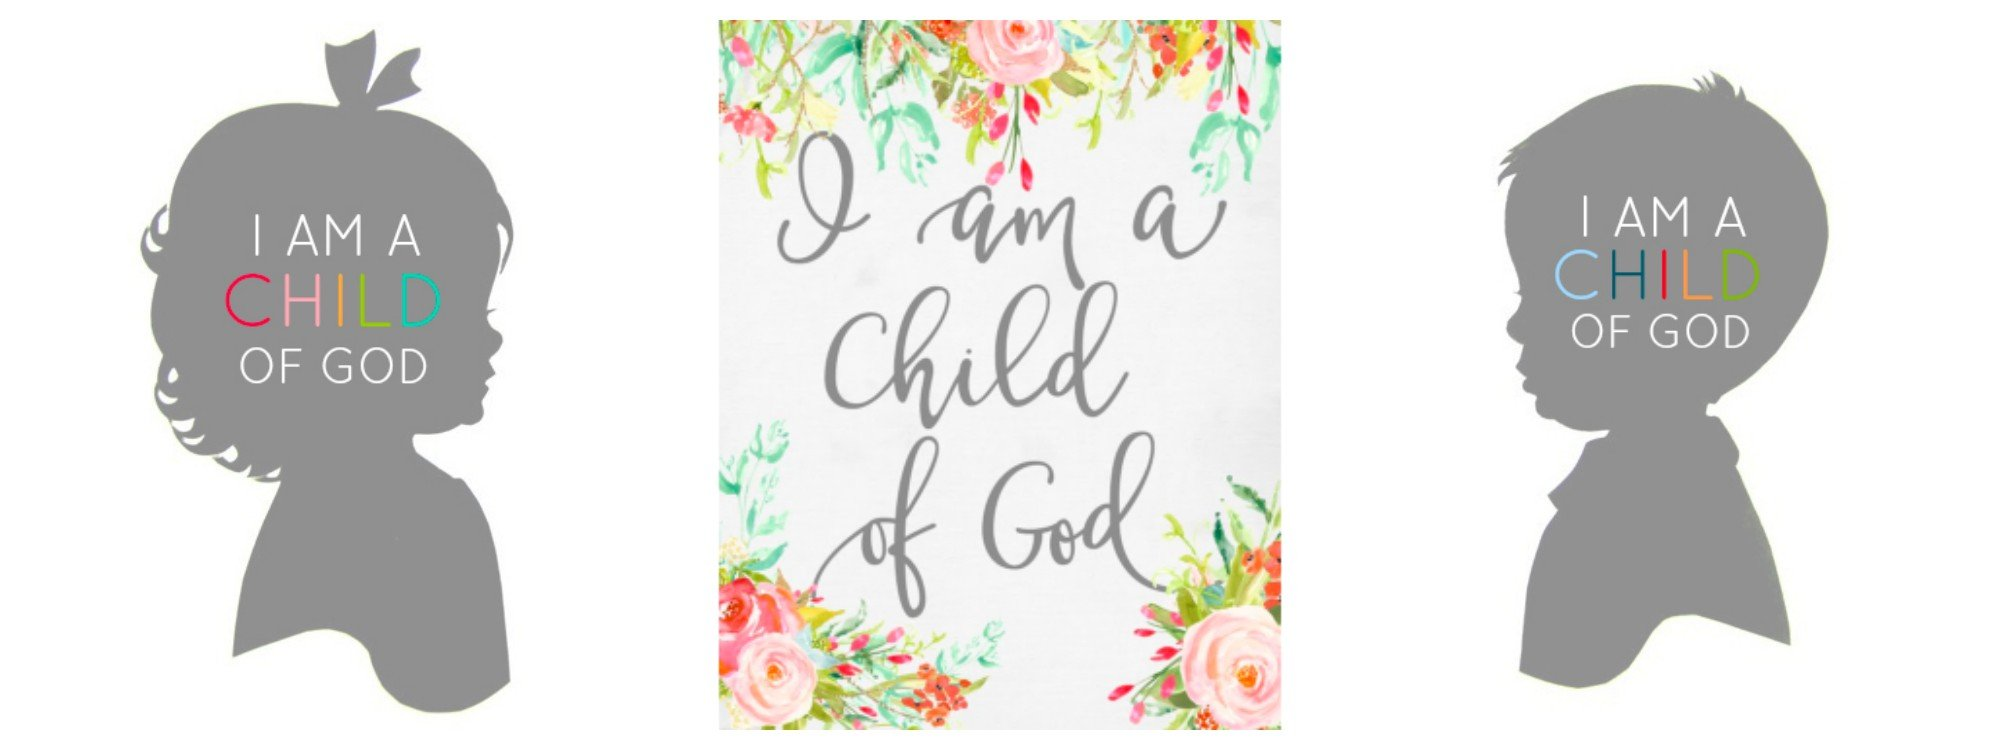 Free printables for children. I am a child of God free printable